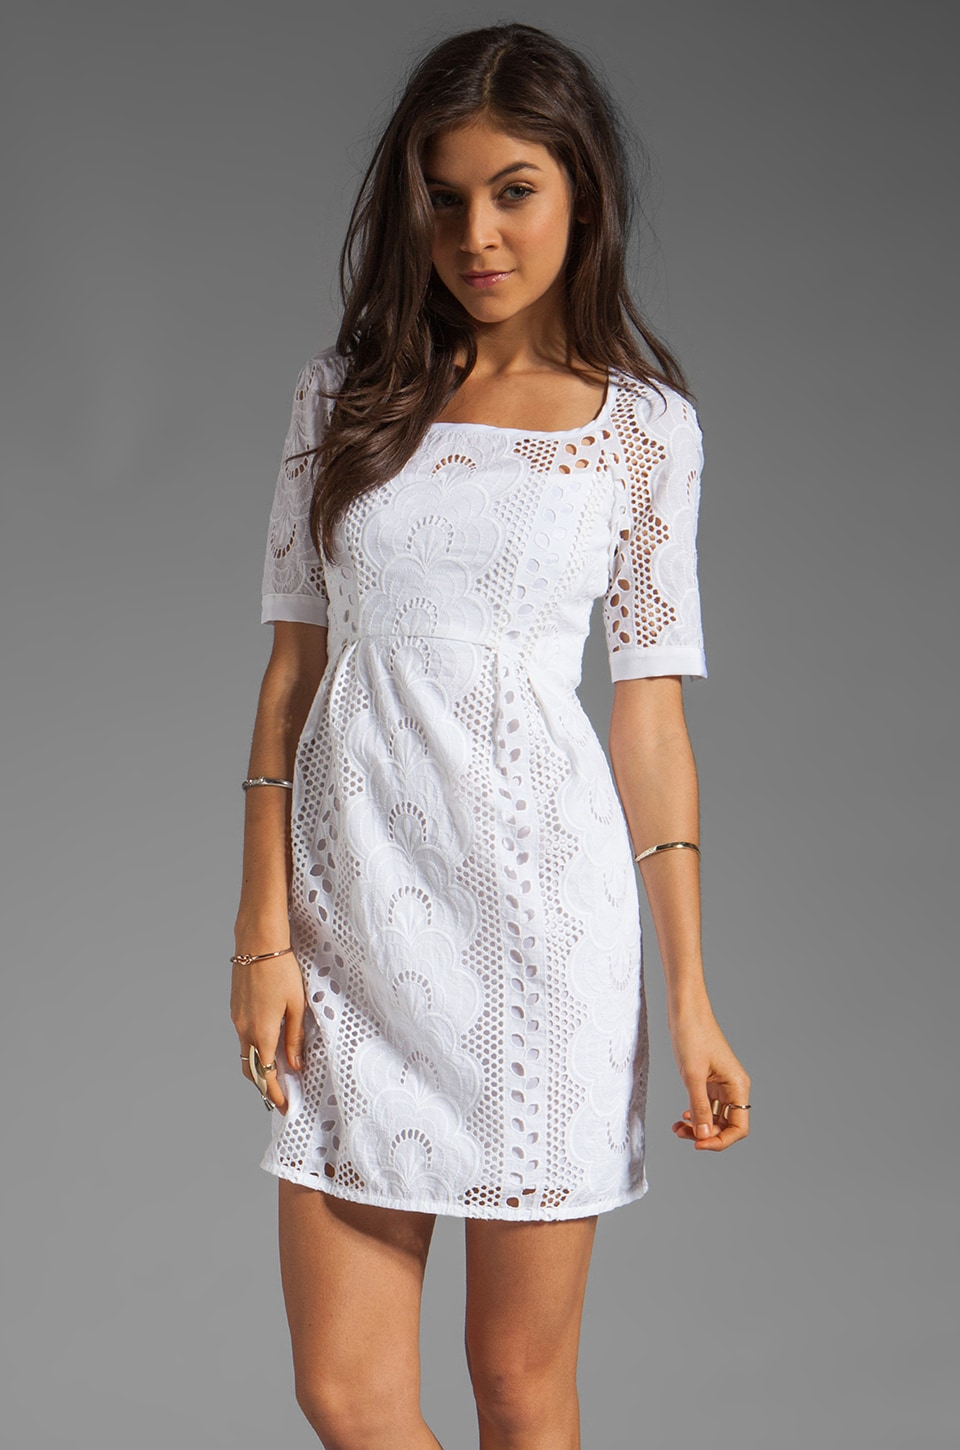 Nanette Lepore Sandy Beach Dress in White